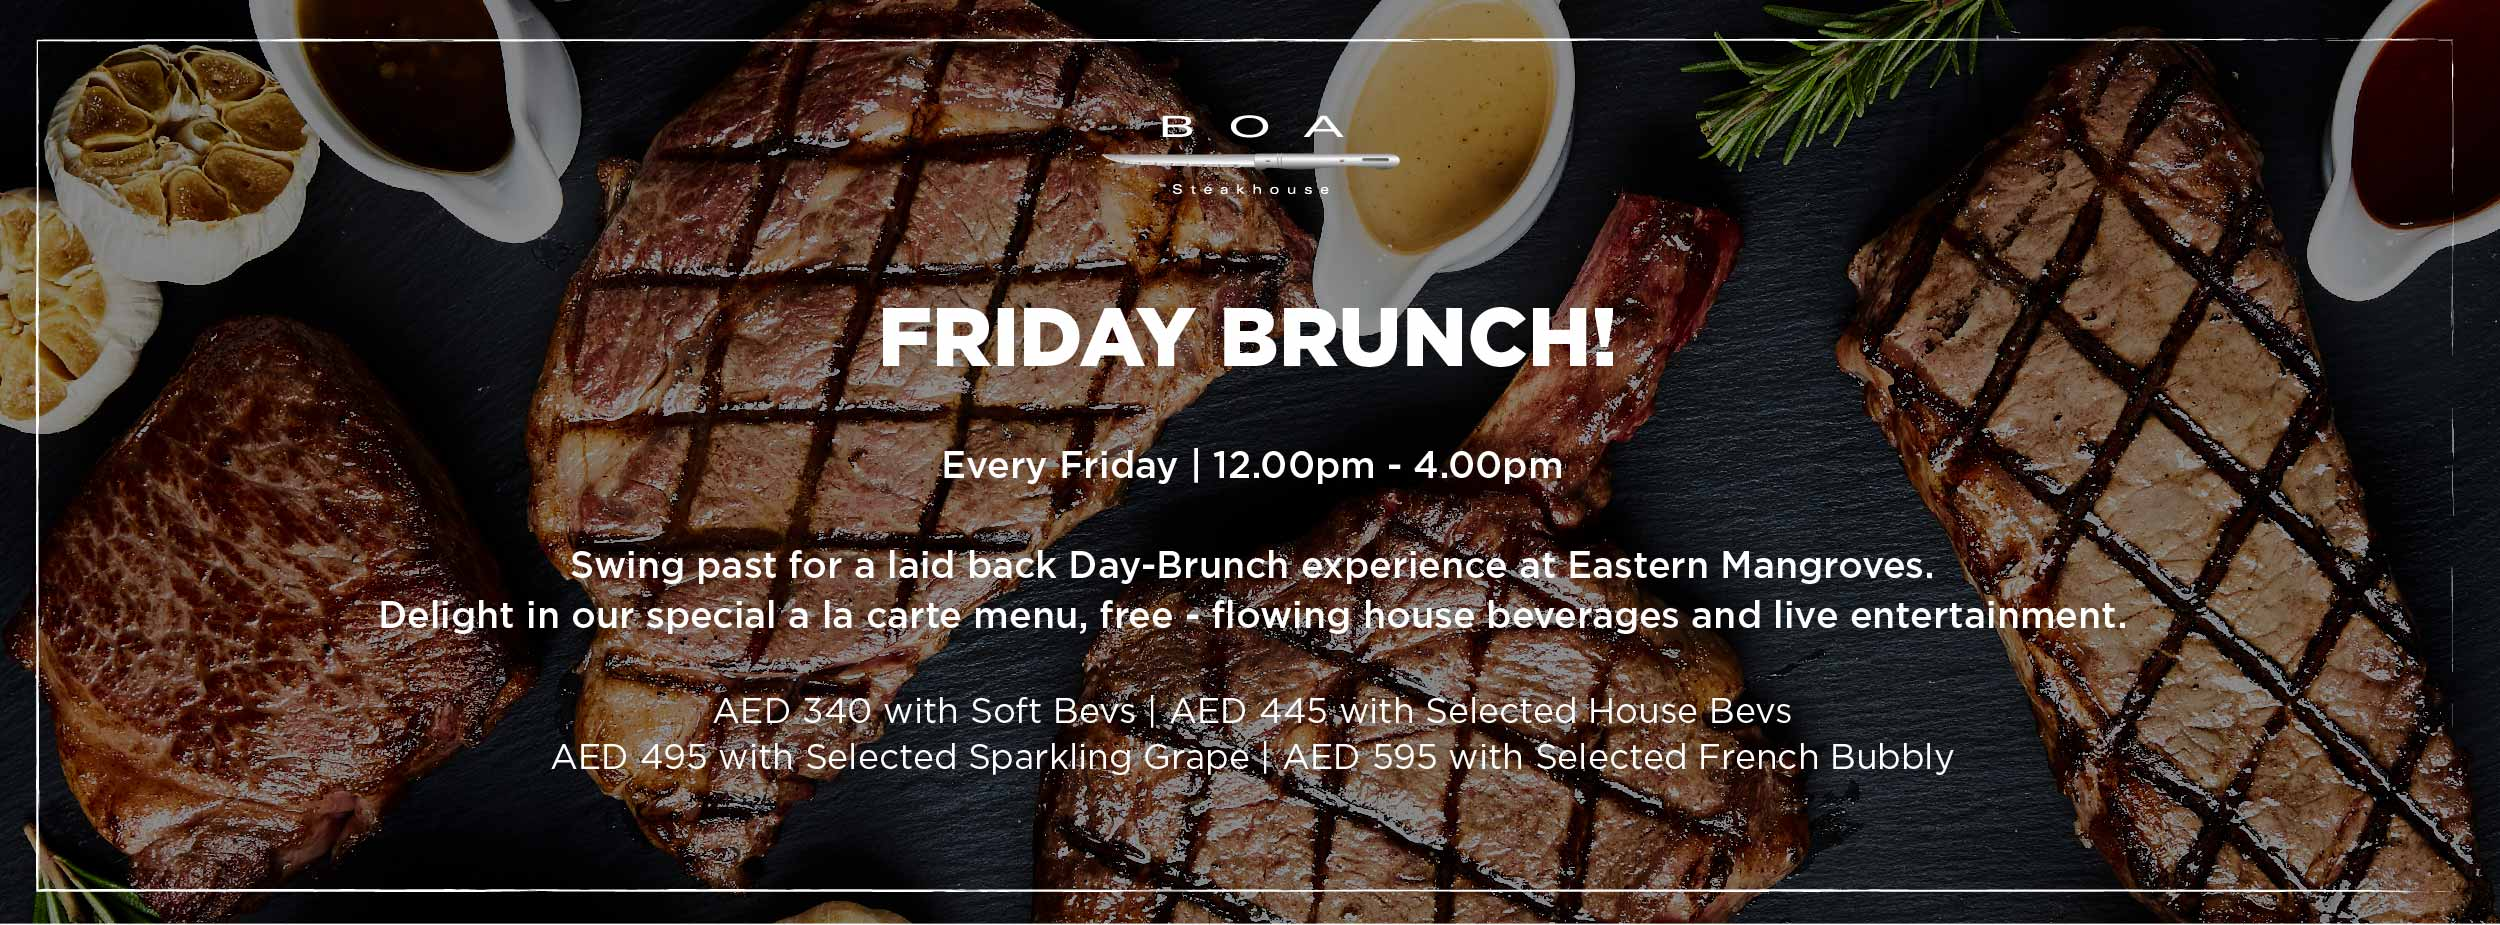 BOA - FRIDAY BRUNCH